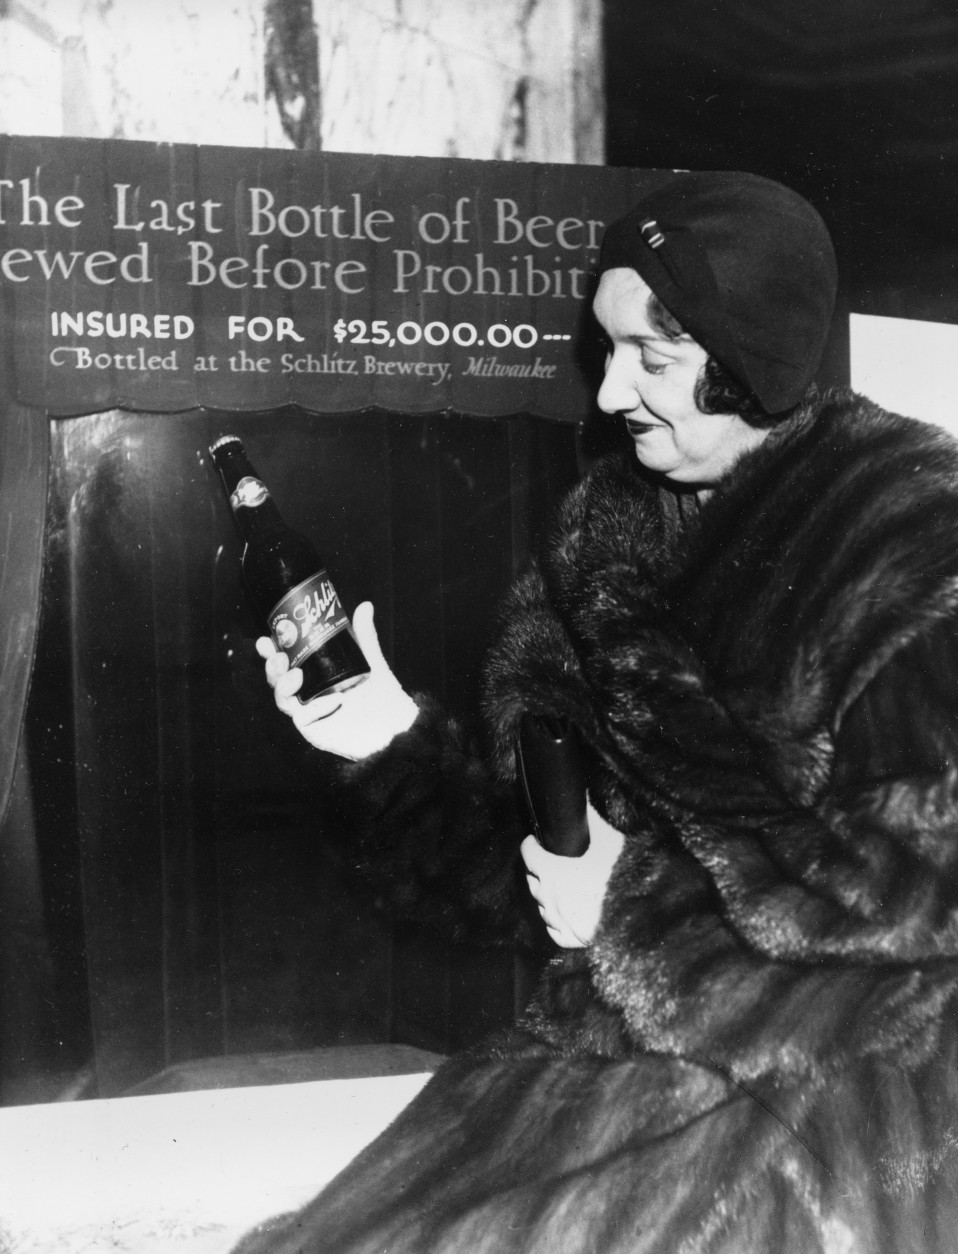 Rae Samuels holds the last bottle of beer that was distilled before prohibition went into effect in Chicago, Ill., Dec. 29, 1930.  The bottle of Schlitz has been insured for $25,000.  (AP Photo)